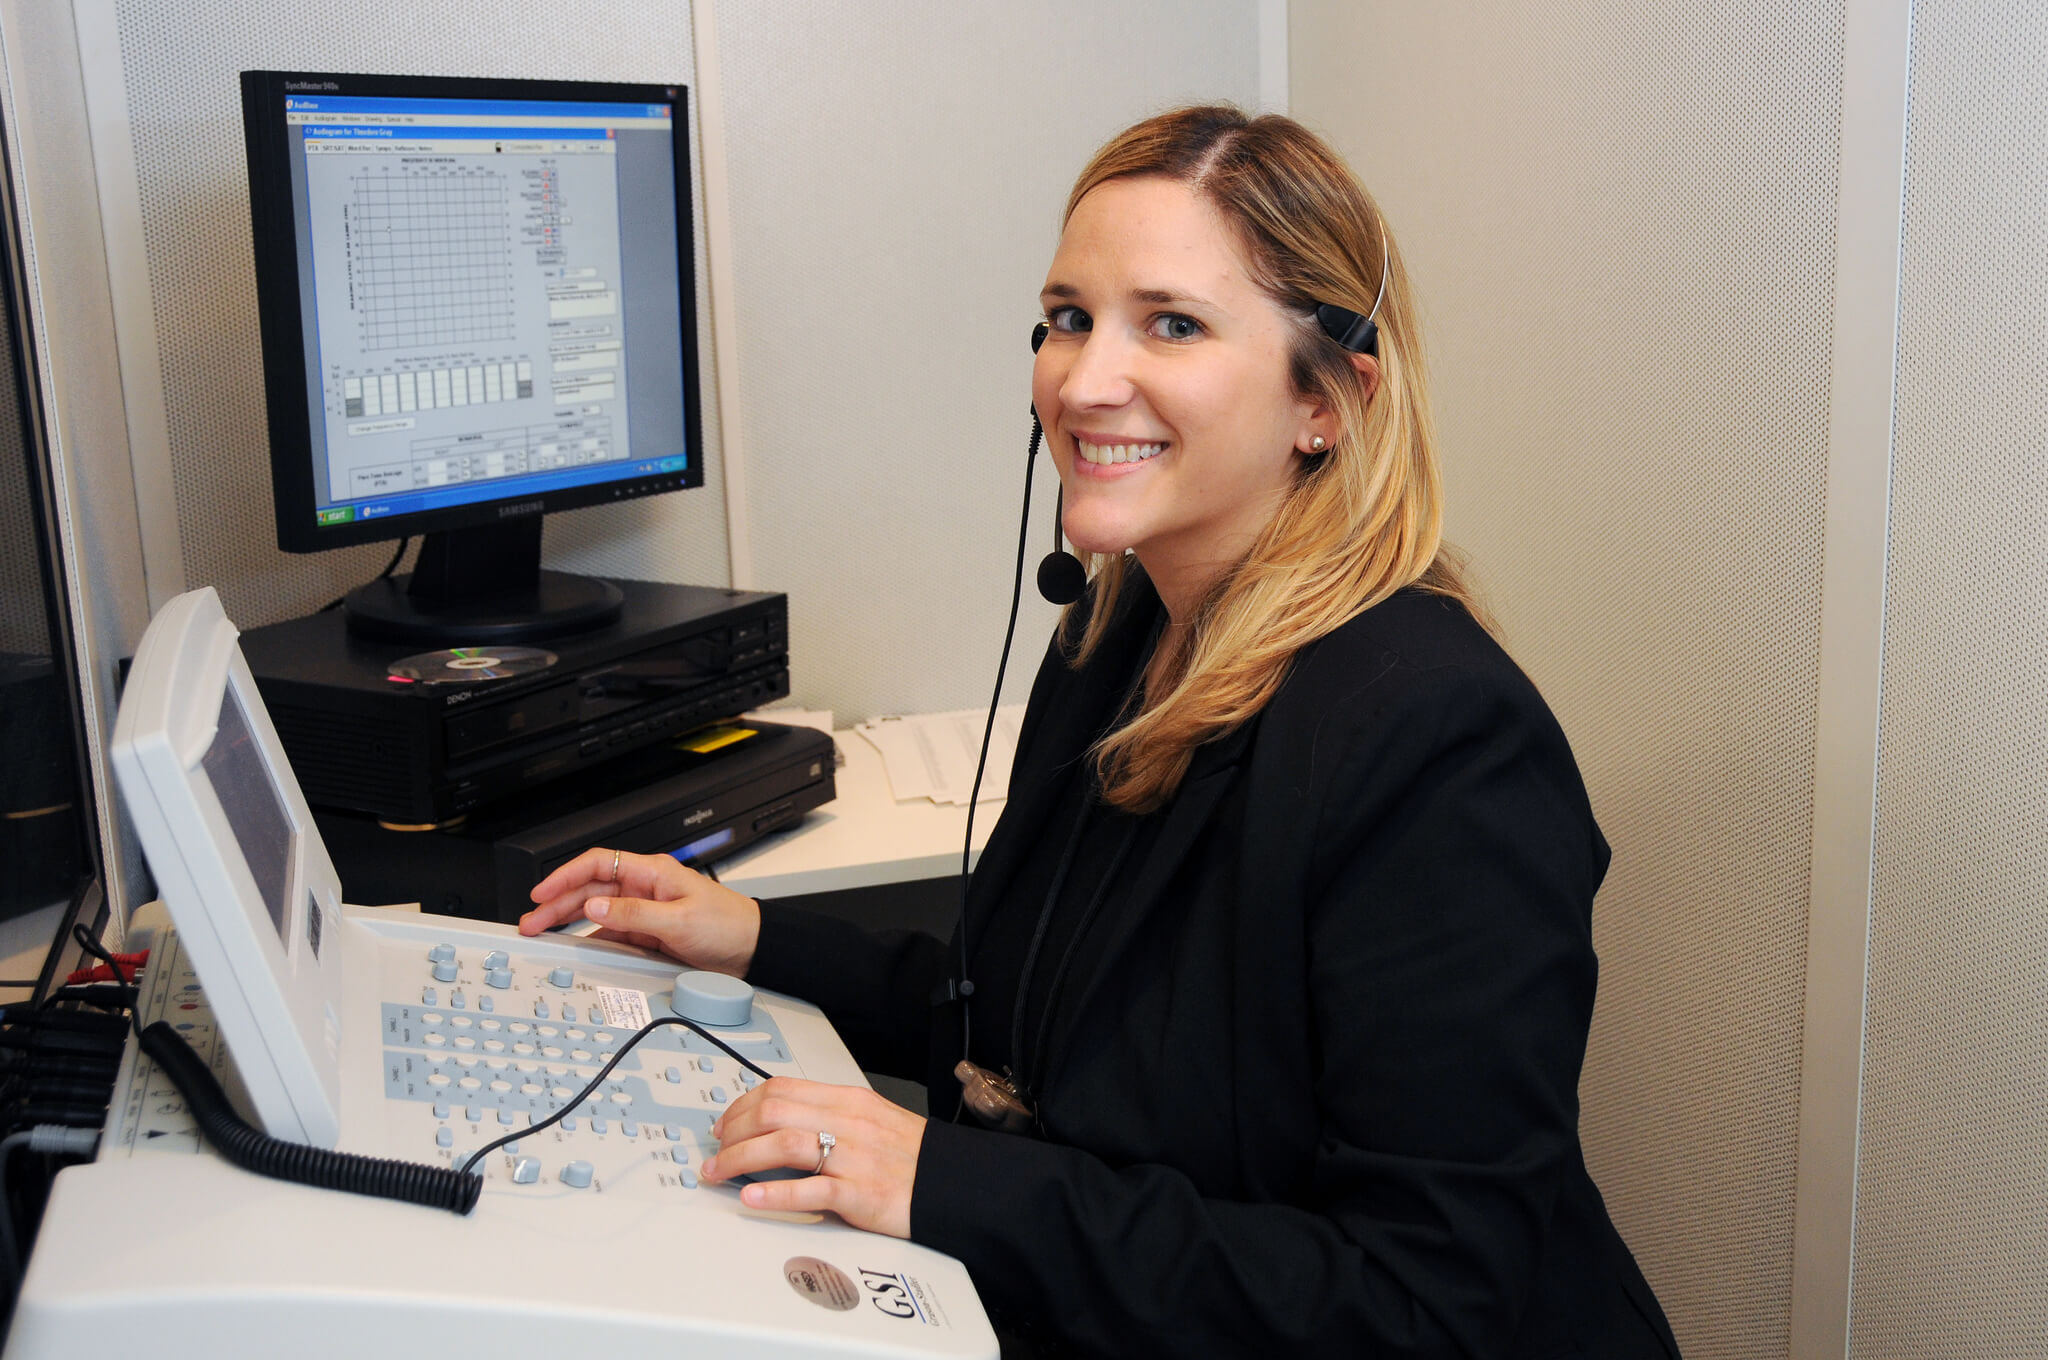 Audiology Services Sibley Memorial Hospital In